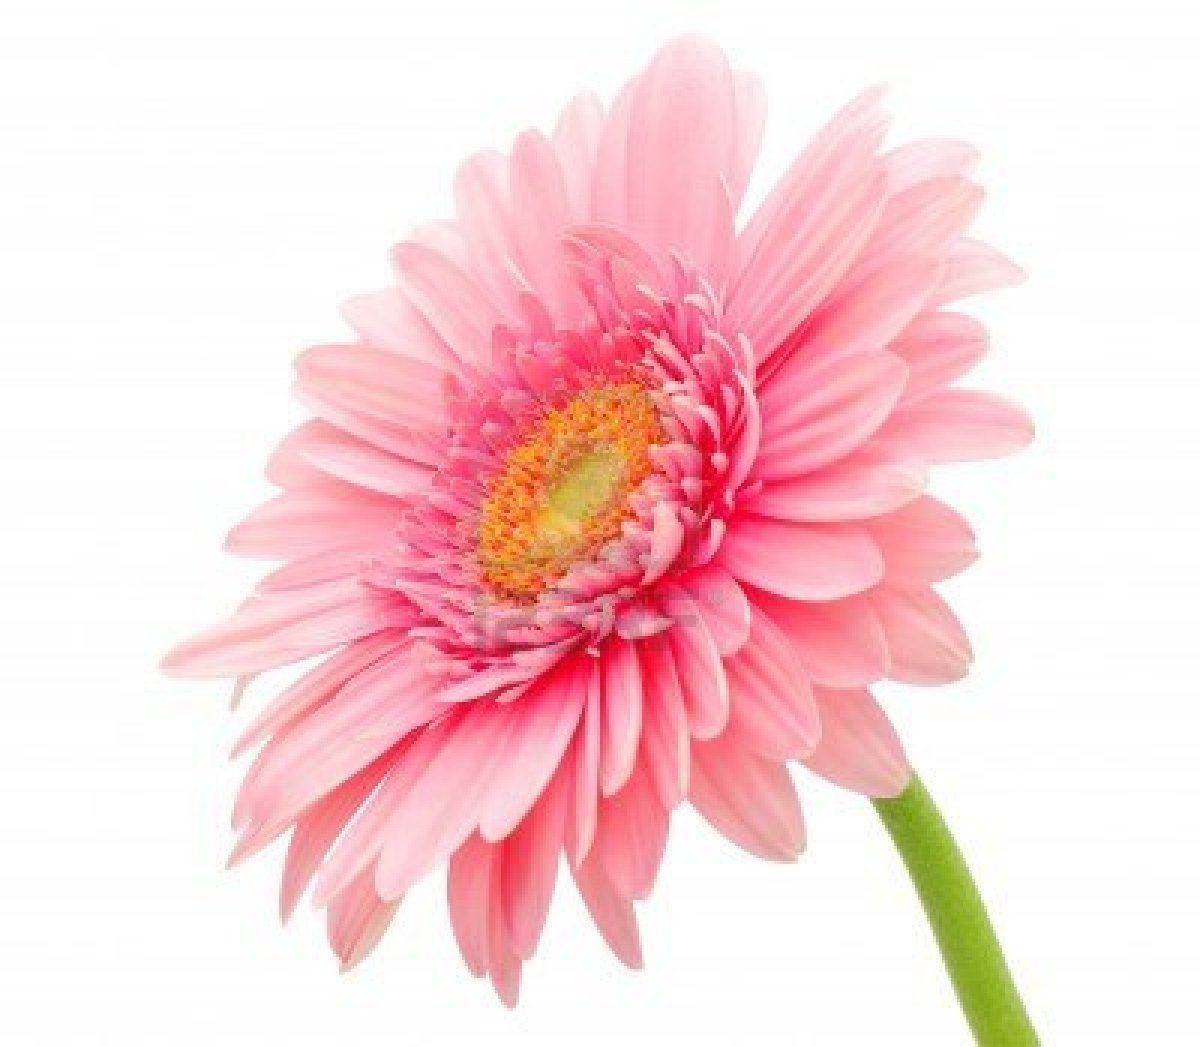 gerbera and daisy flower wallpaper Zone Wallpaper Backgrounds 1200x1047